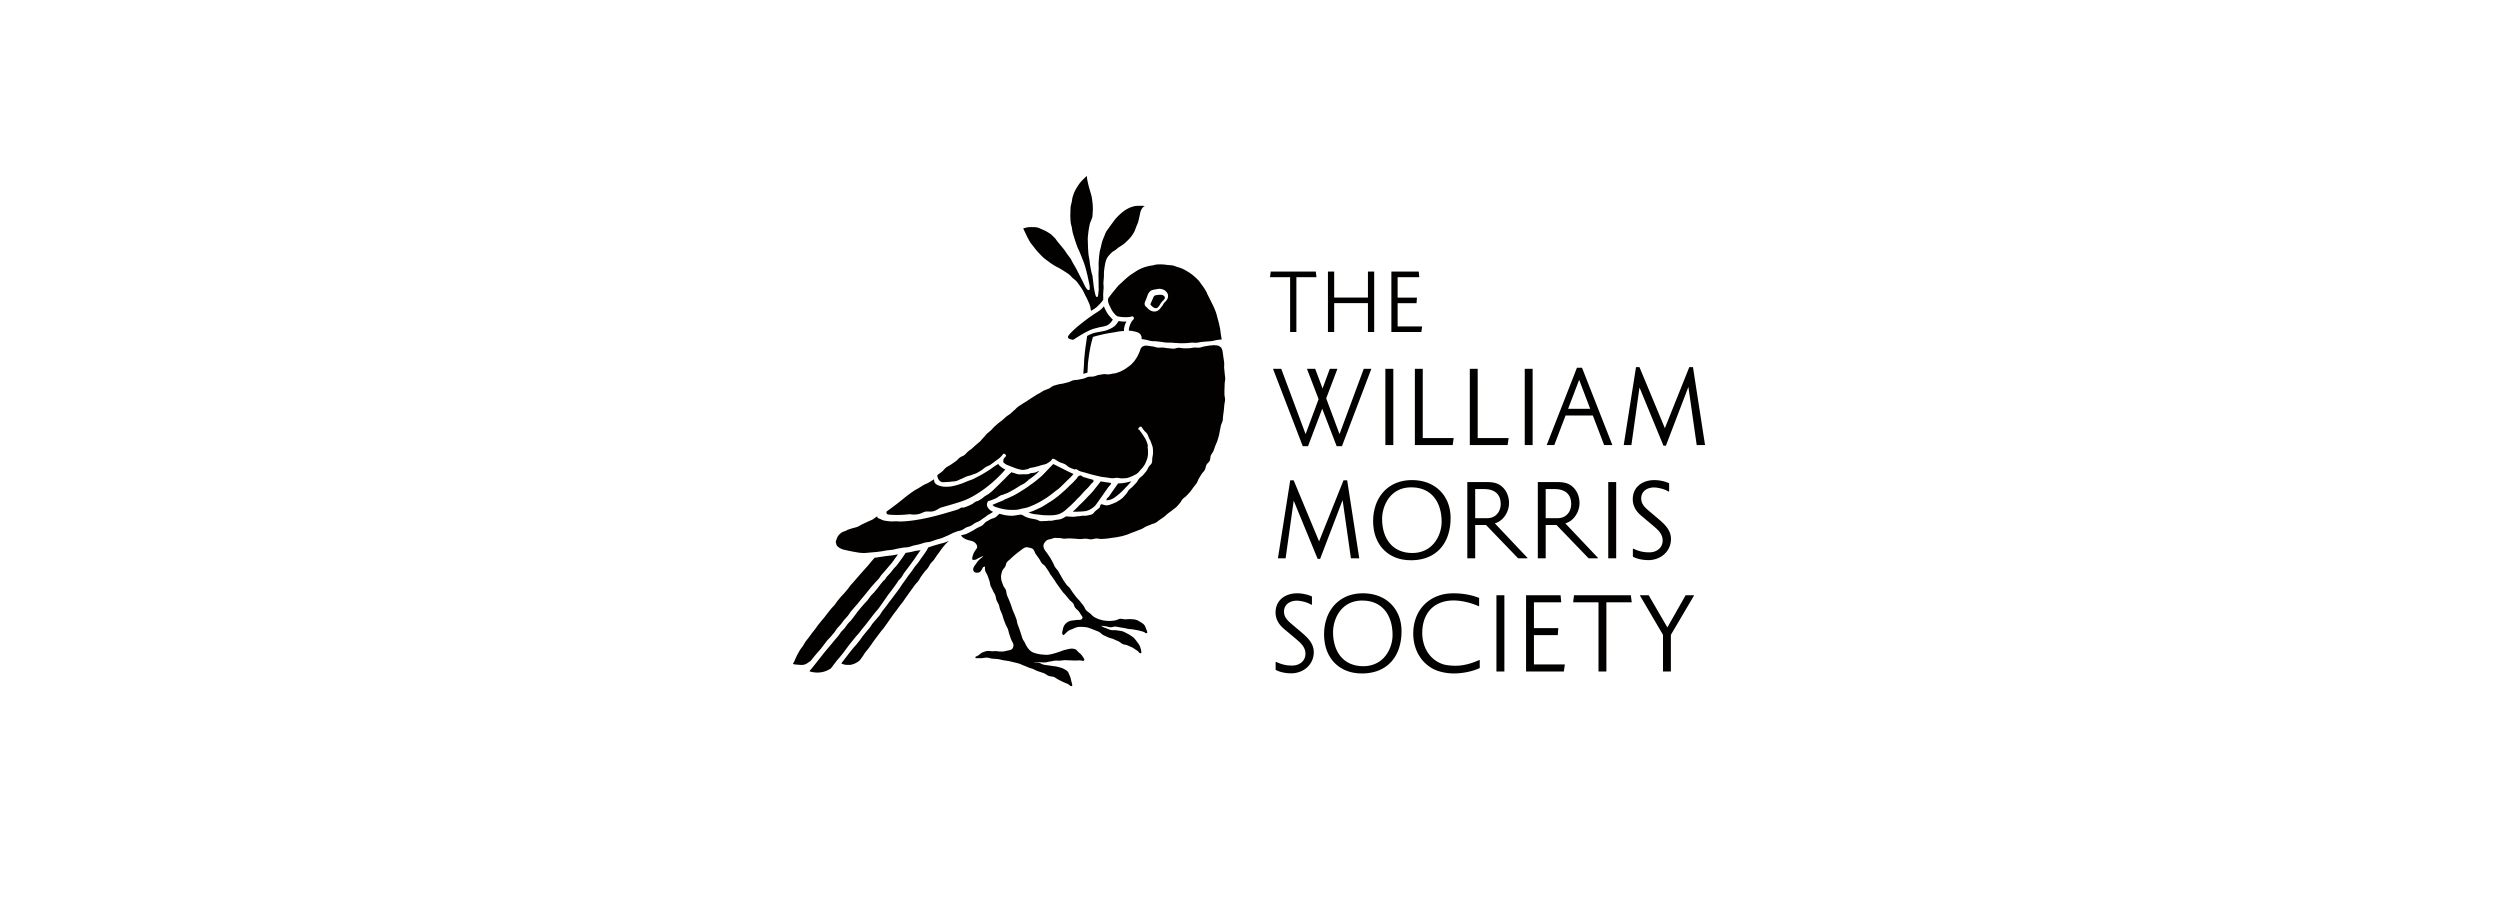 Charlotte_Willow_Retief_The_William_Morris_Society_Logo_BW.jpg